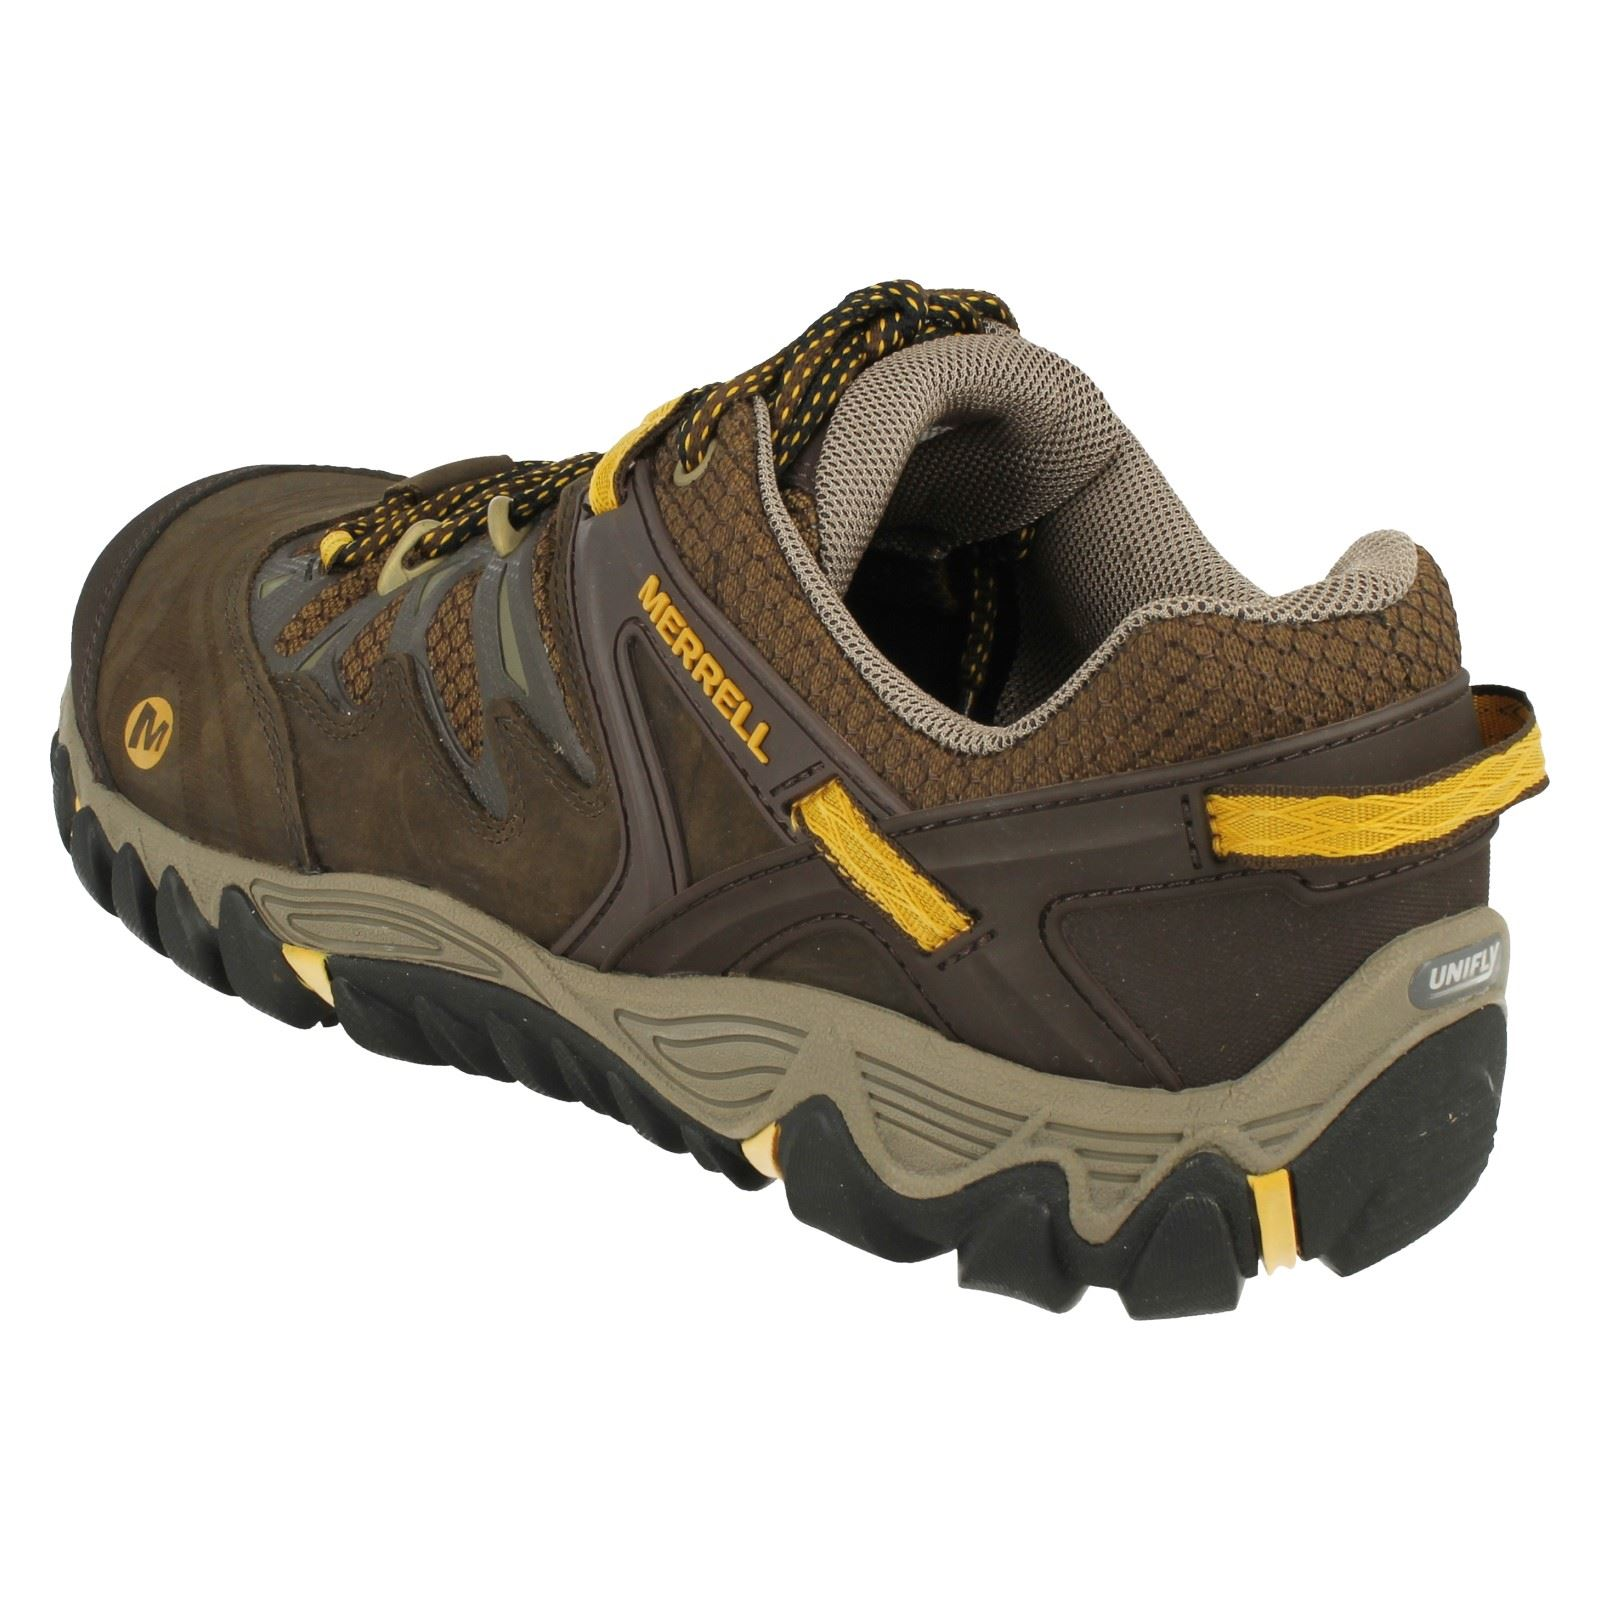 Allout Slate Shoes black Casual Black Mens Blaze Merrell J24305 yellow Walking trainers 7XSSwH